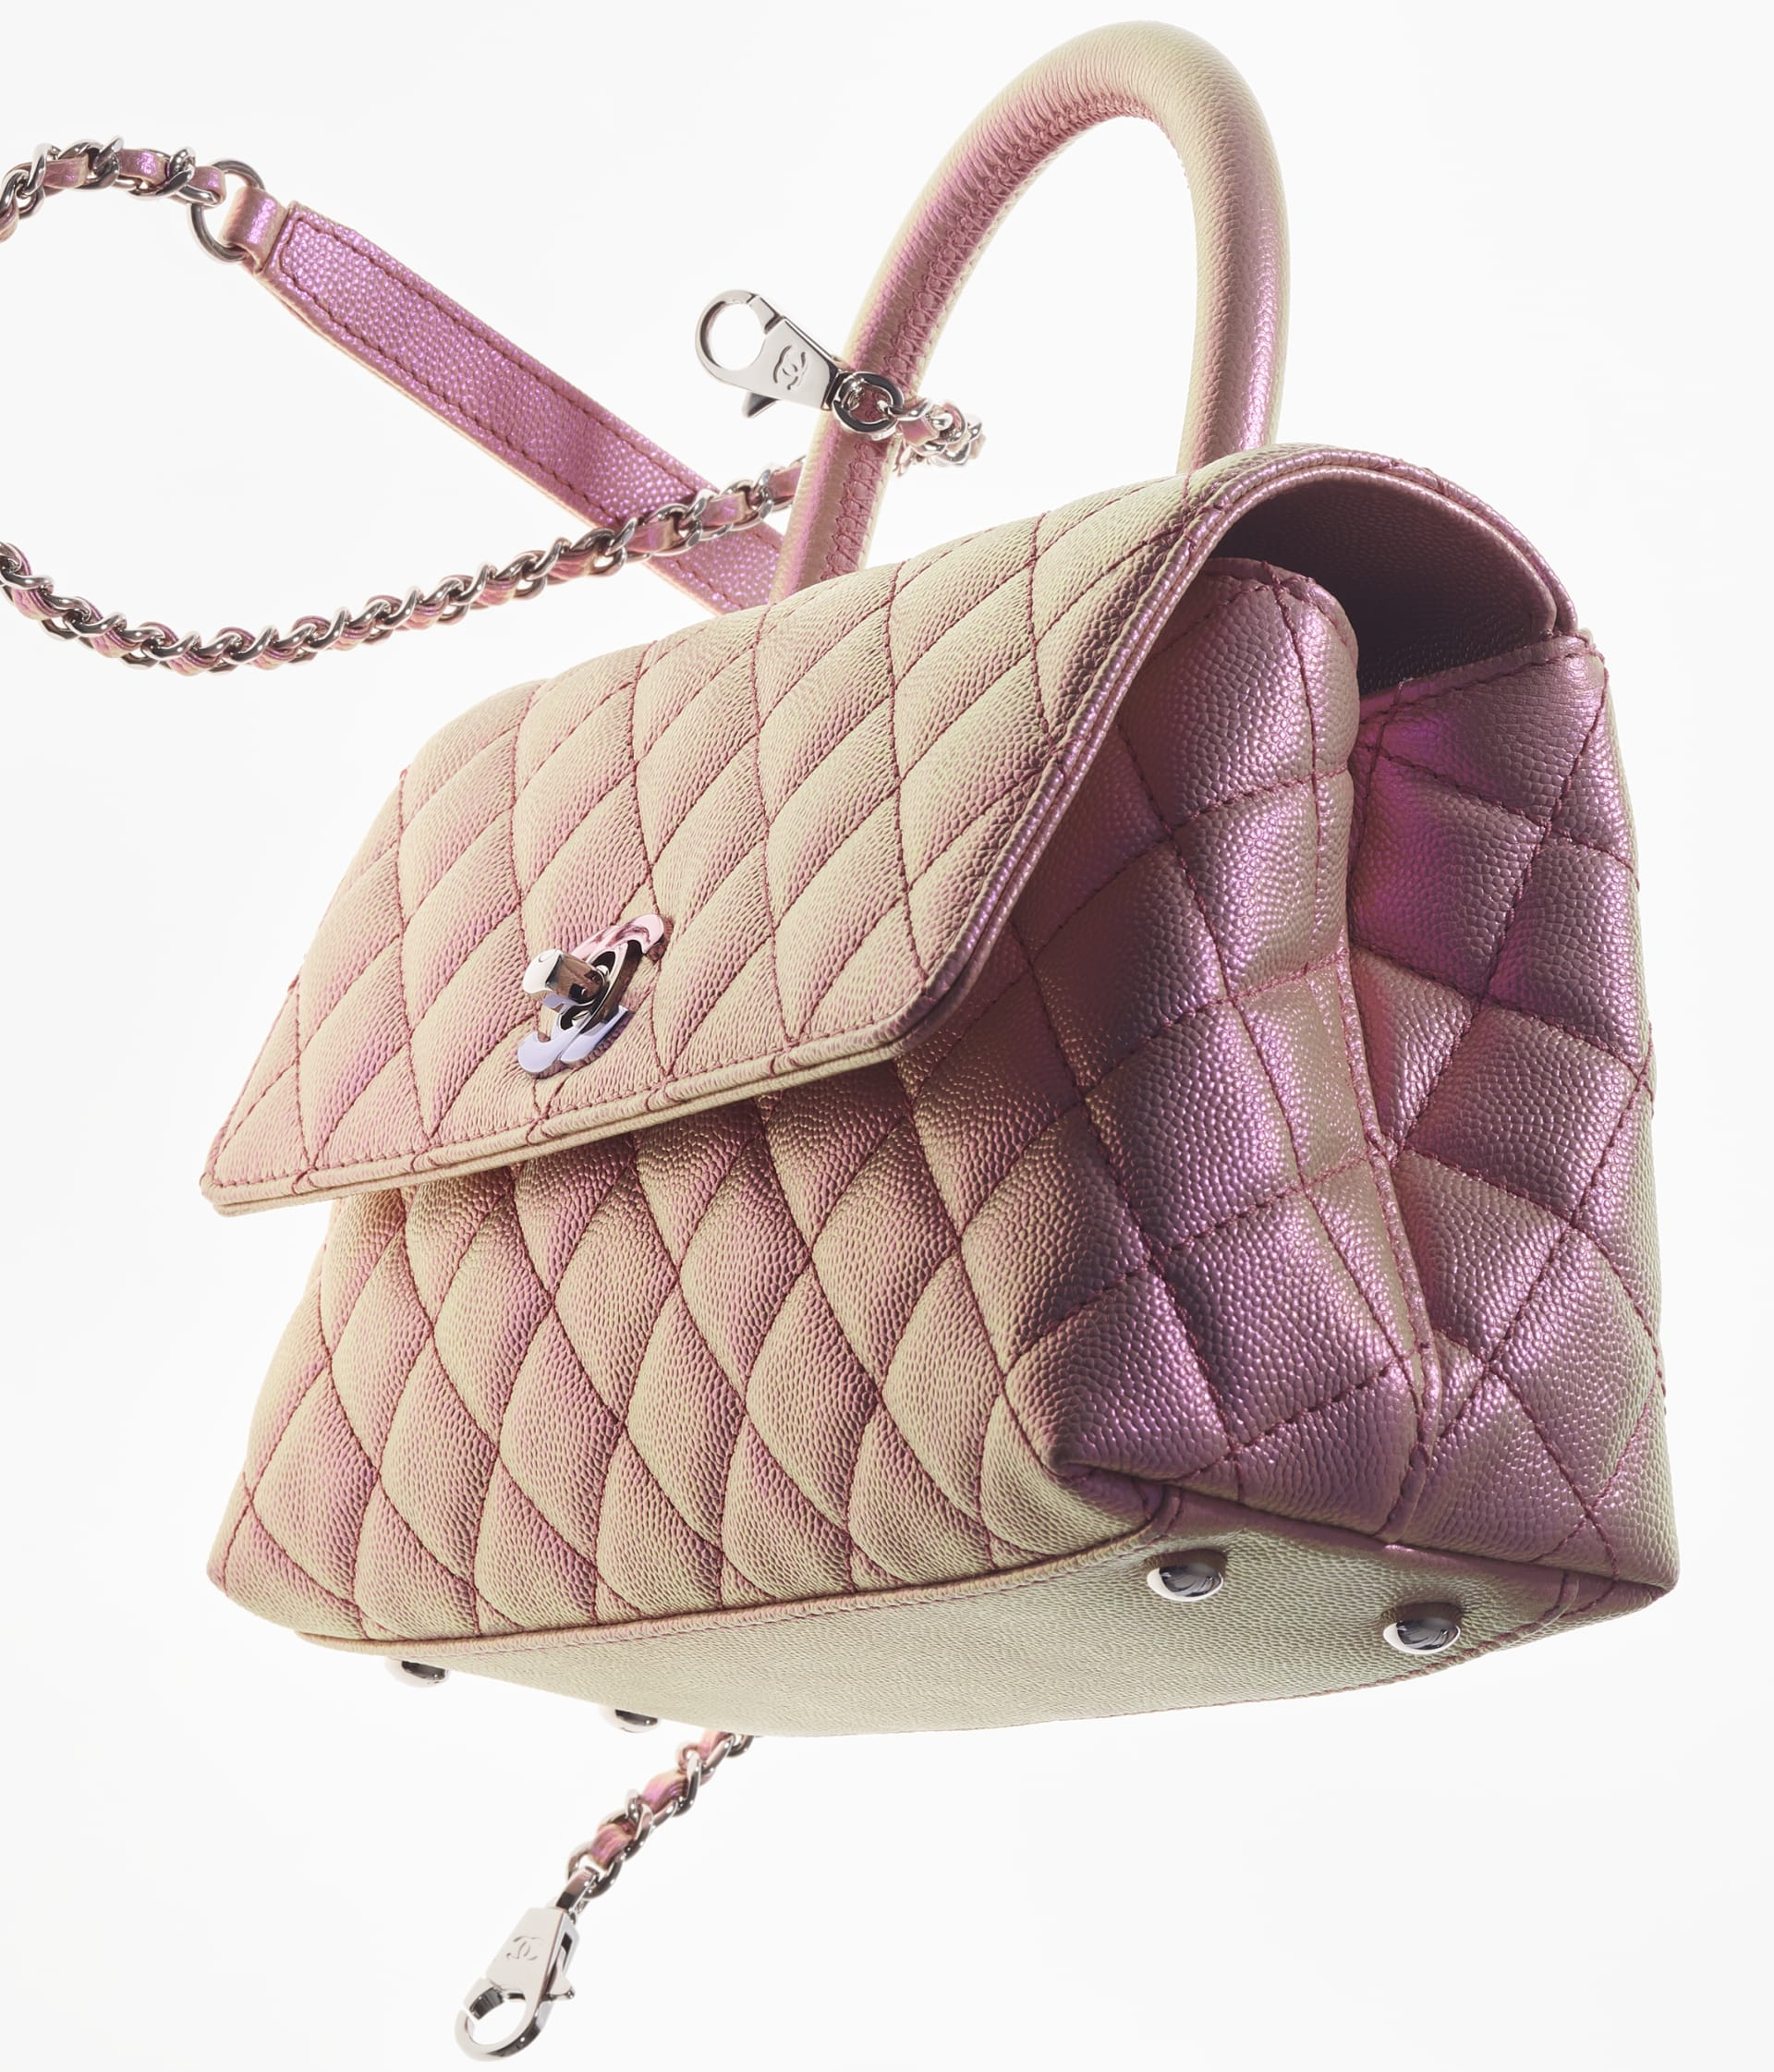 image 4 - Flap Bag with Top Handle - Iridescent Grained Calfskin & Gradient Lacquered Metal - Light Pink